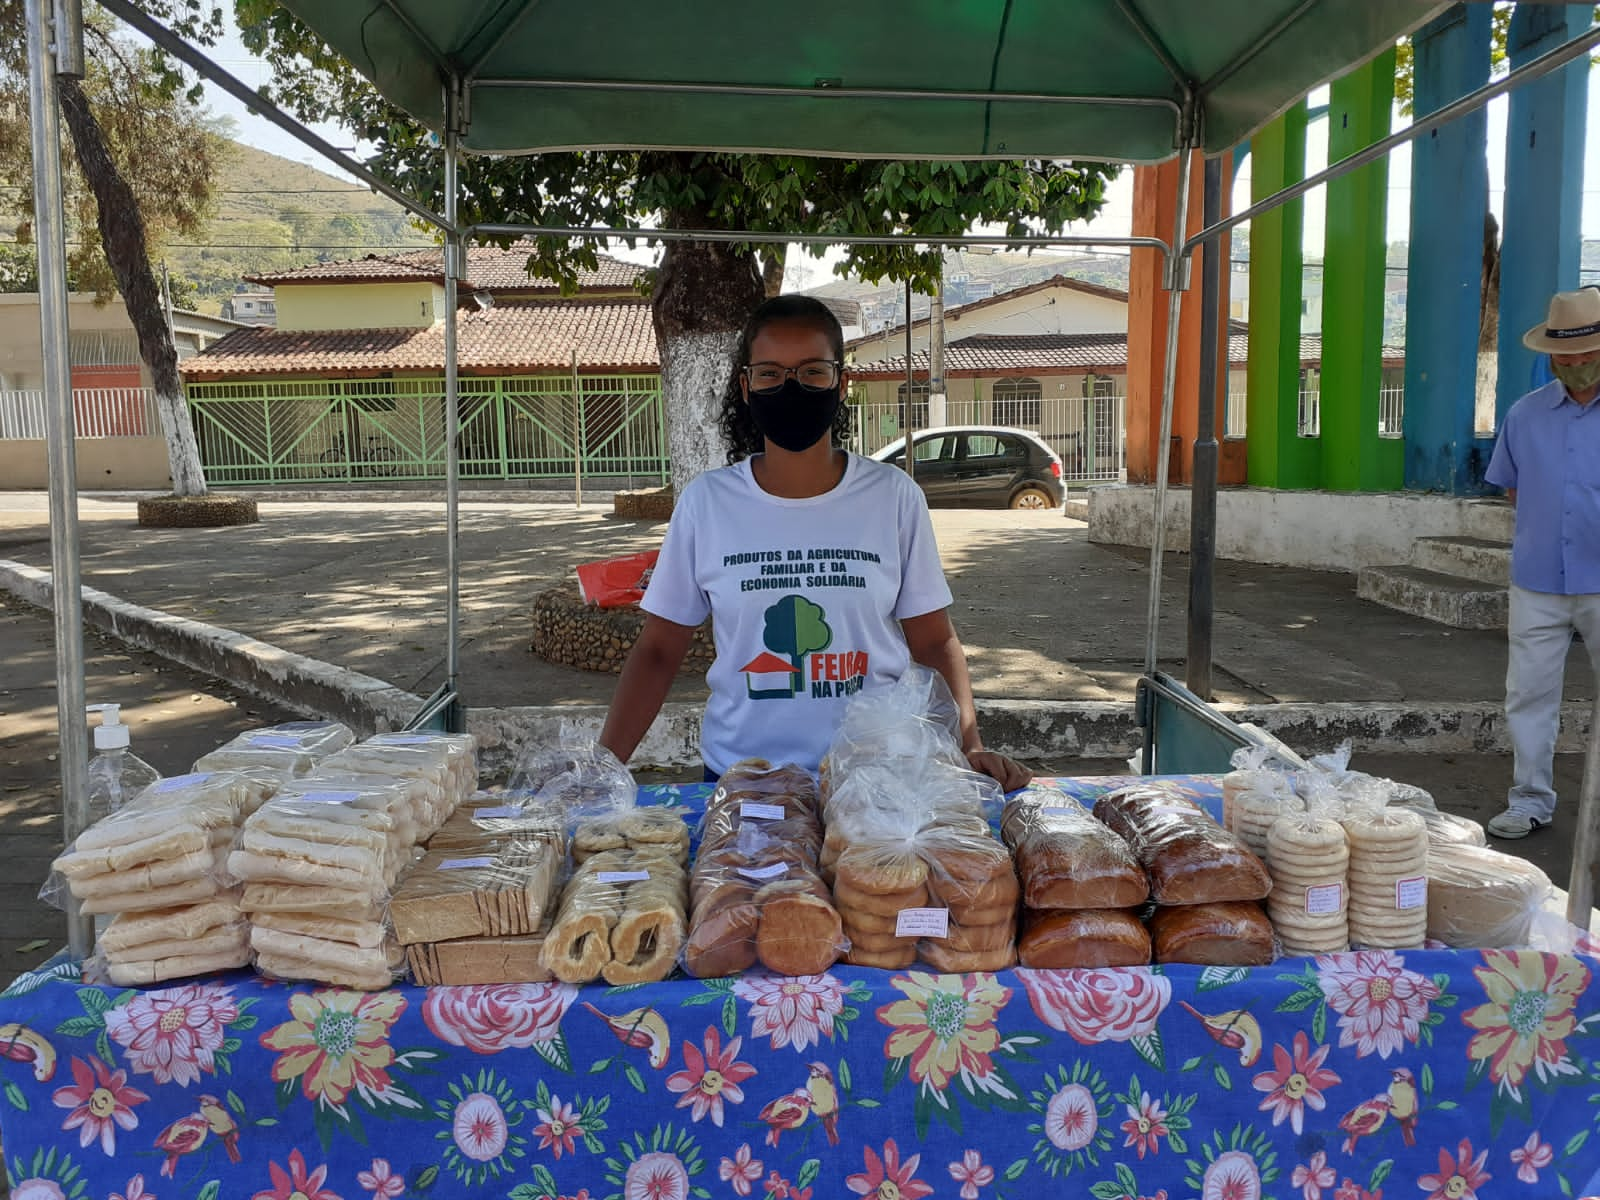 Mariana sells baked goods in her rural community in Brazil